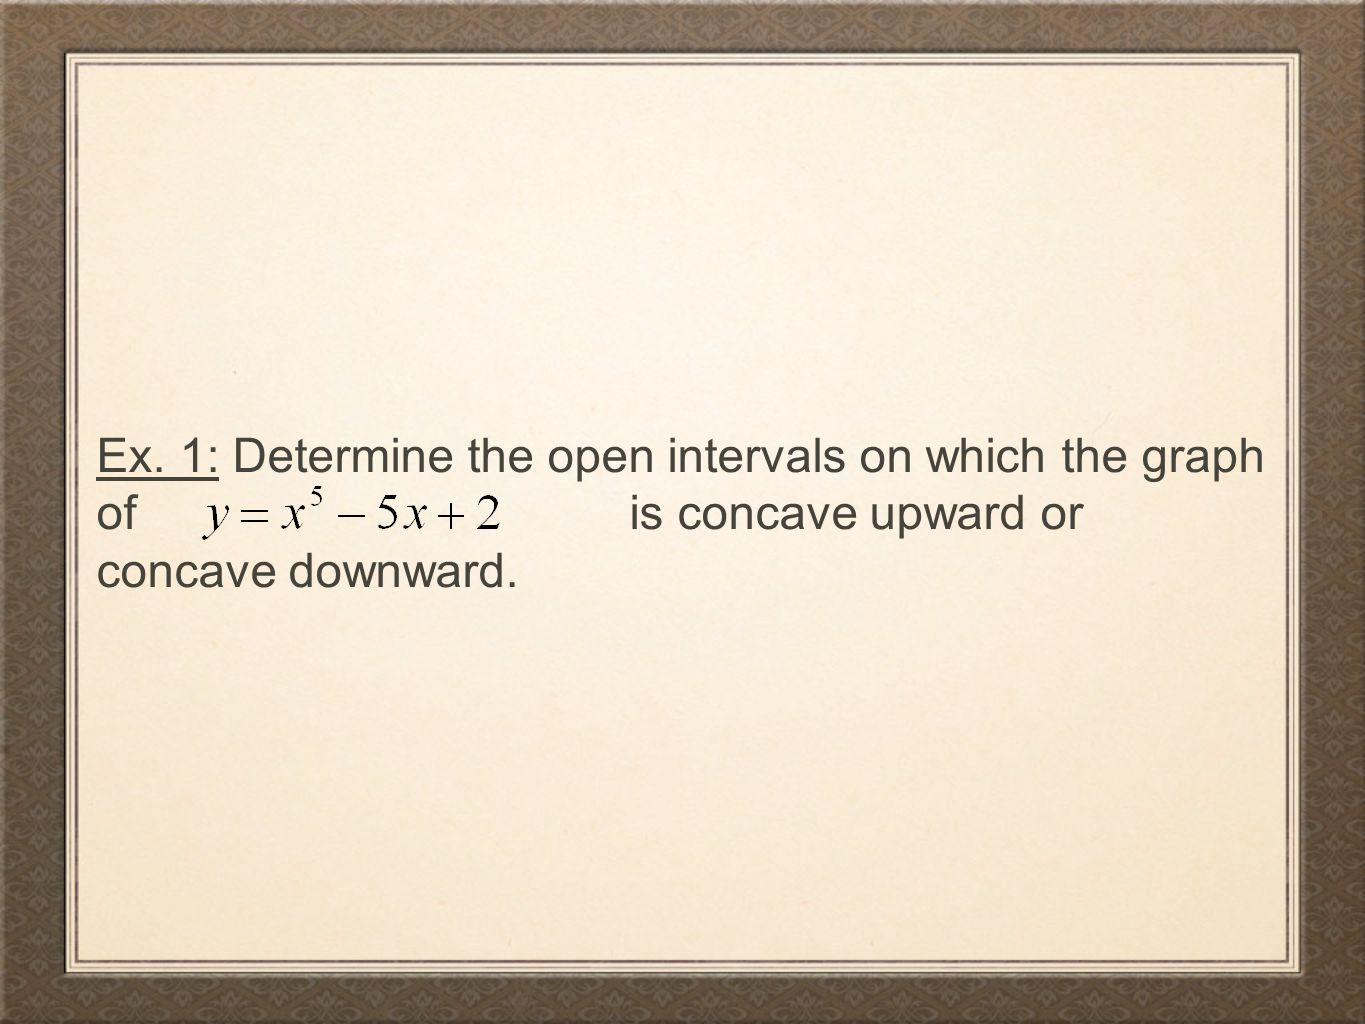 You Try: Determine the open intervals on which the graph of is concave upward or concave downward.